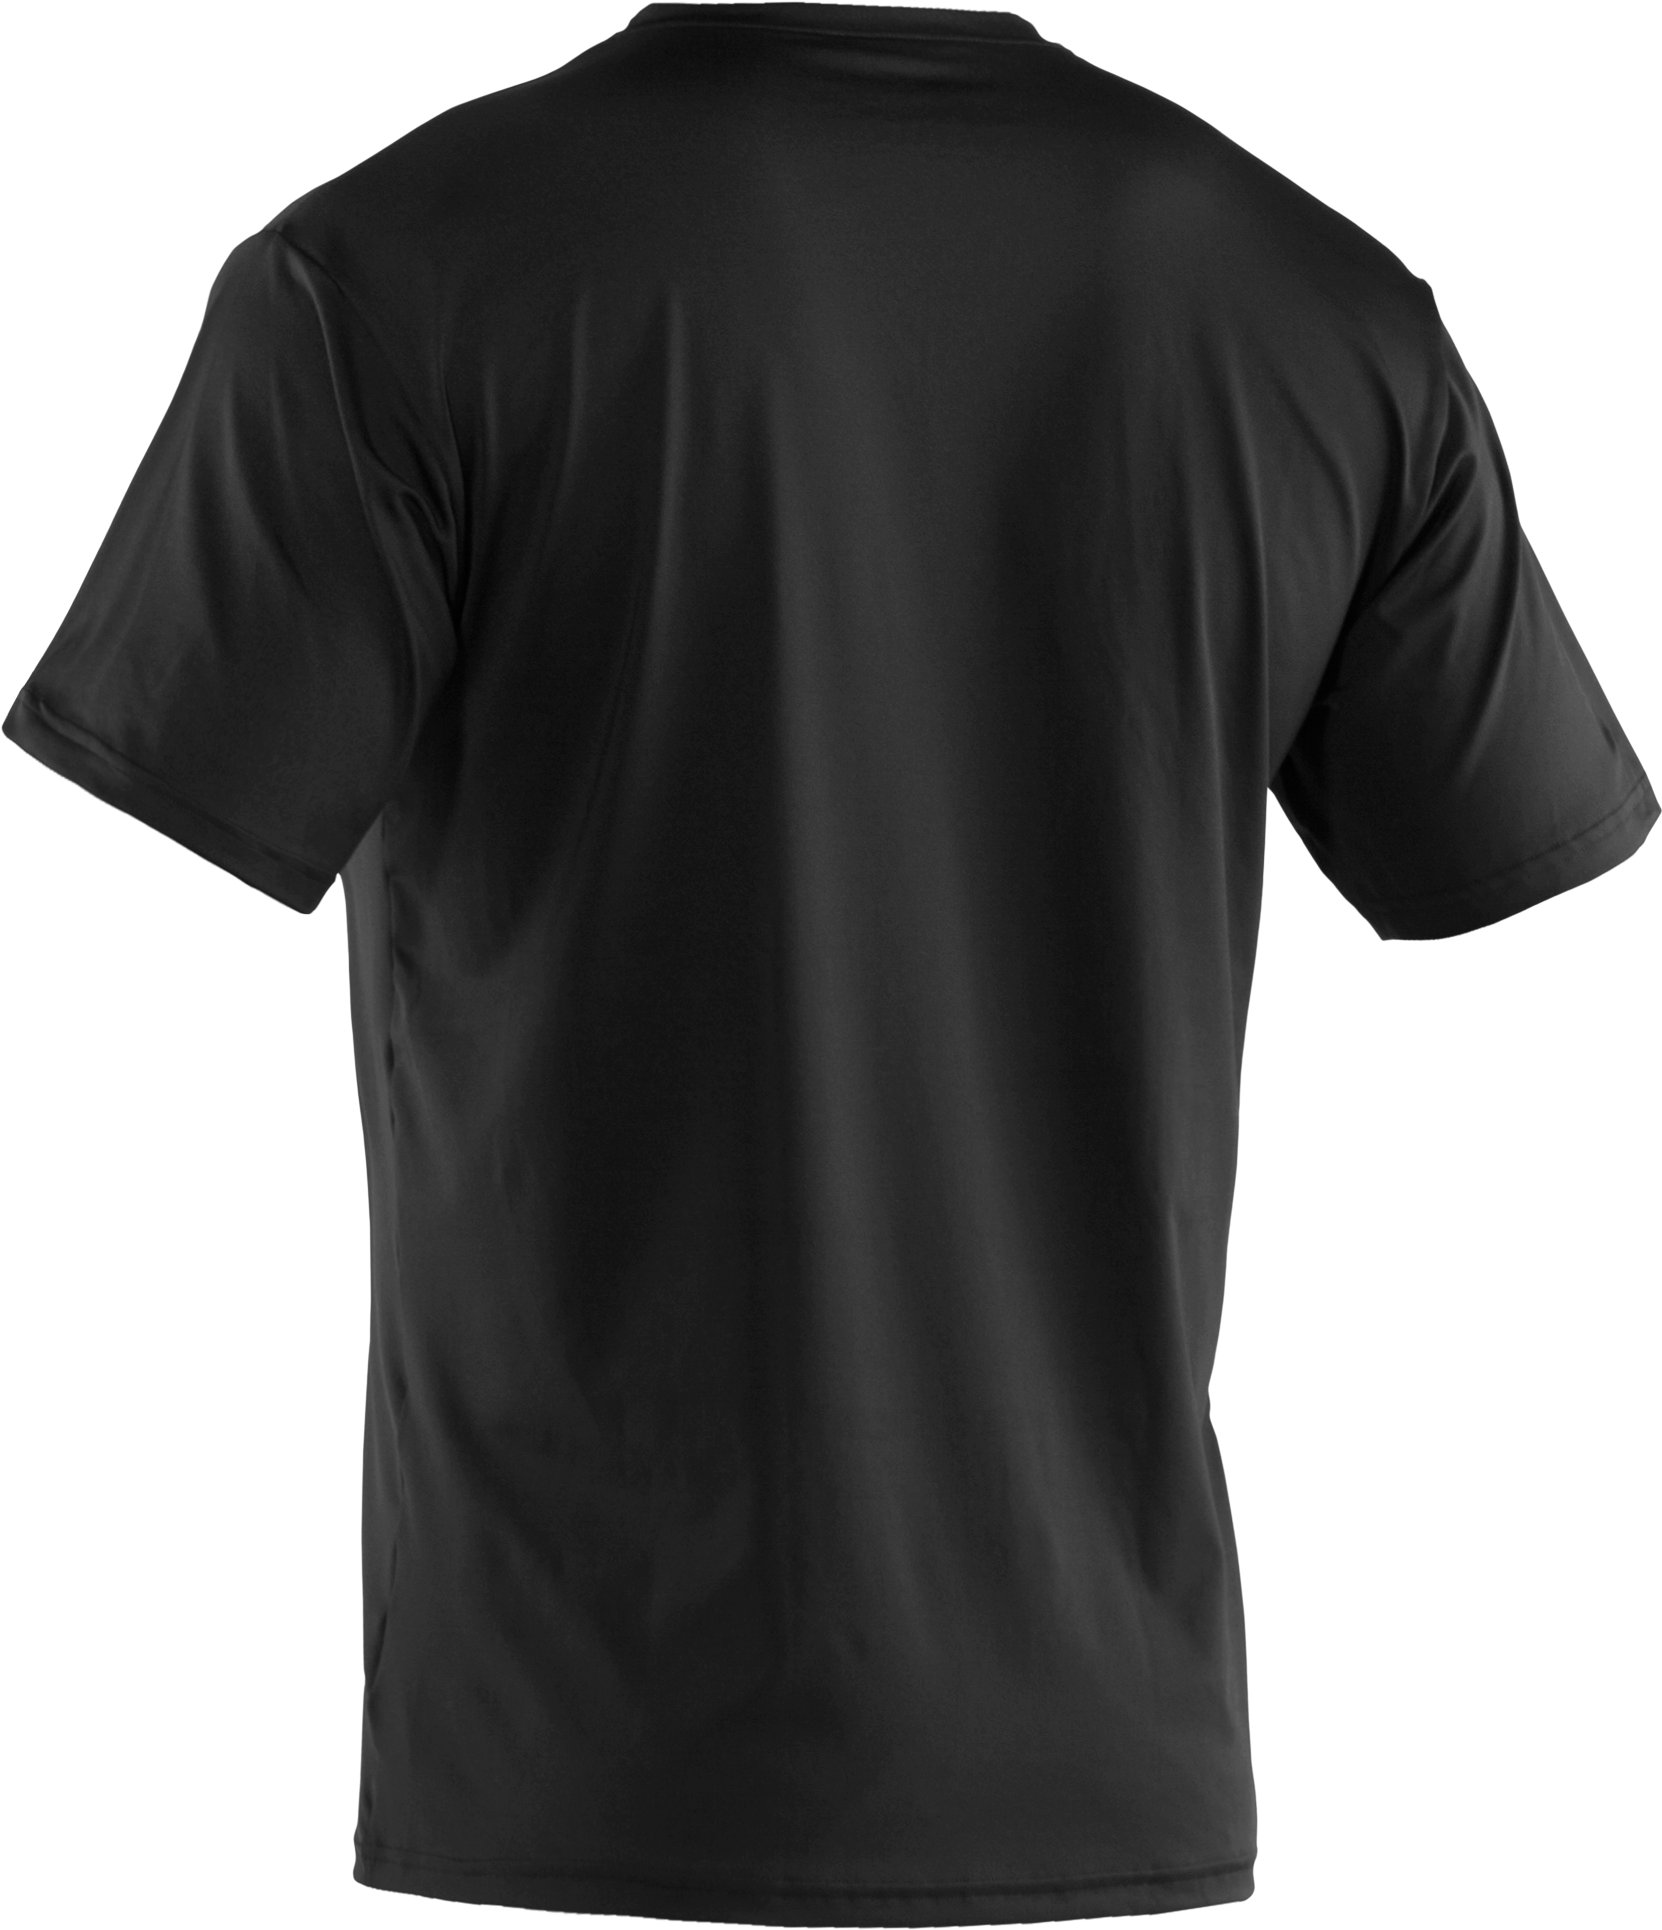 Men's The Original UA Fitted V-Neck Undershirt, Black